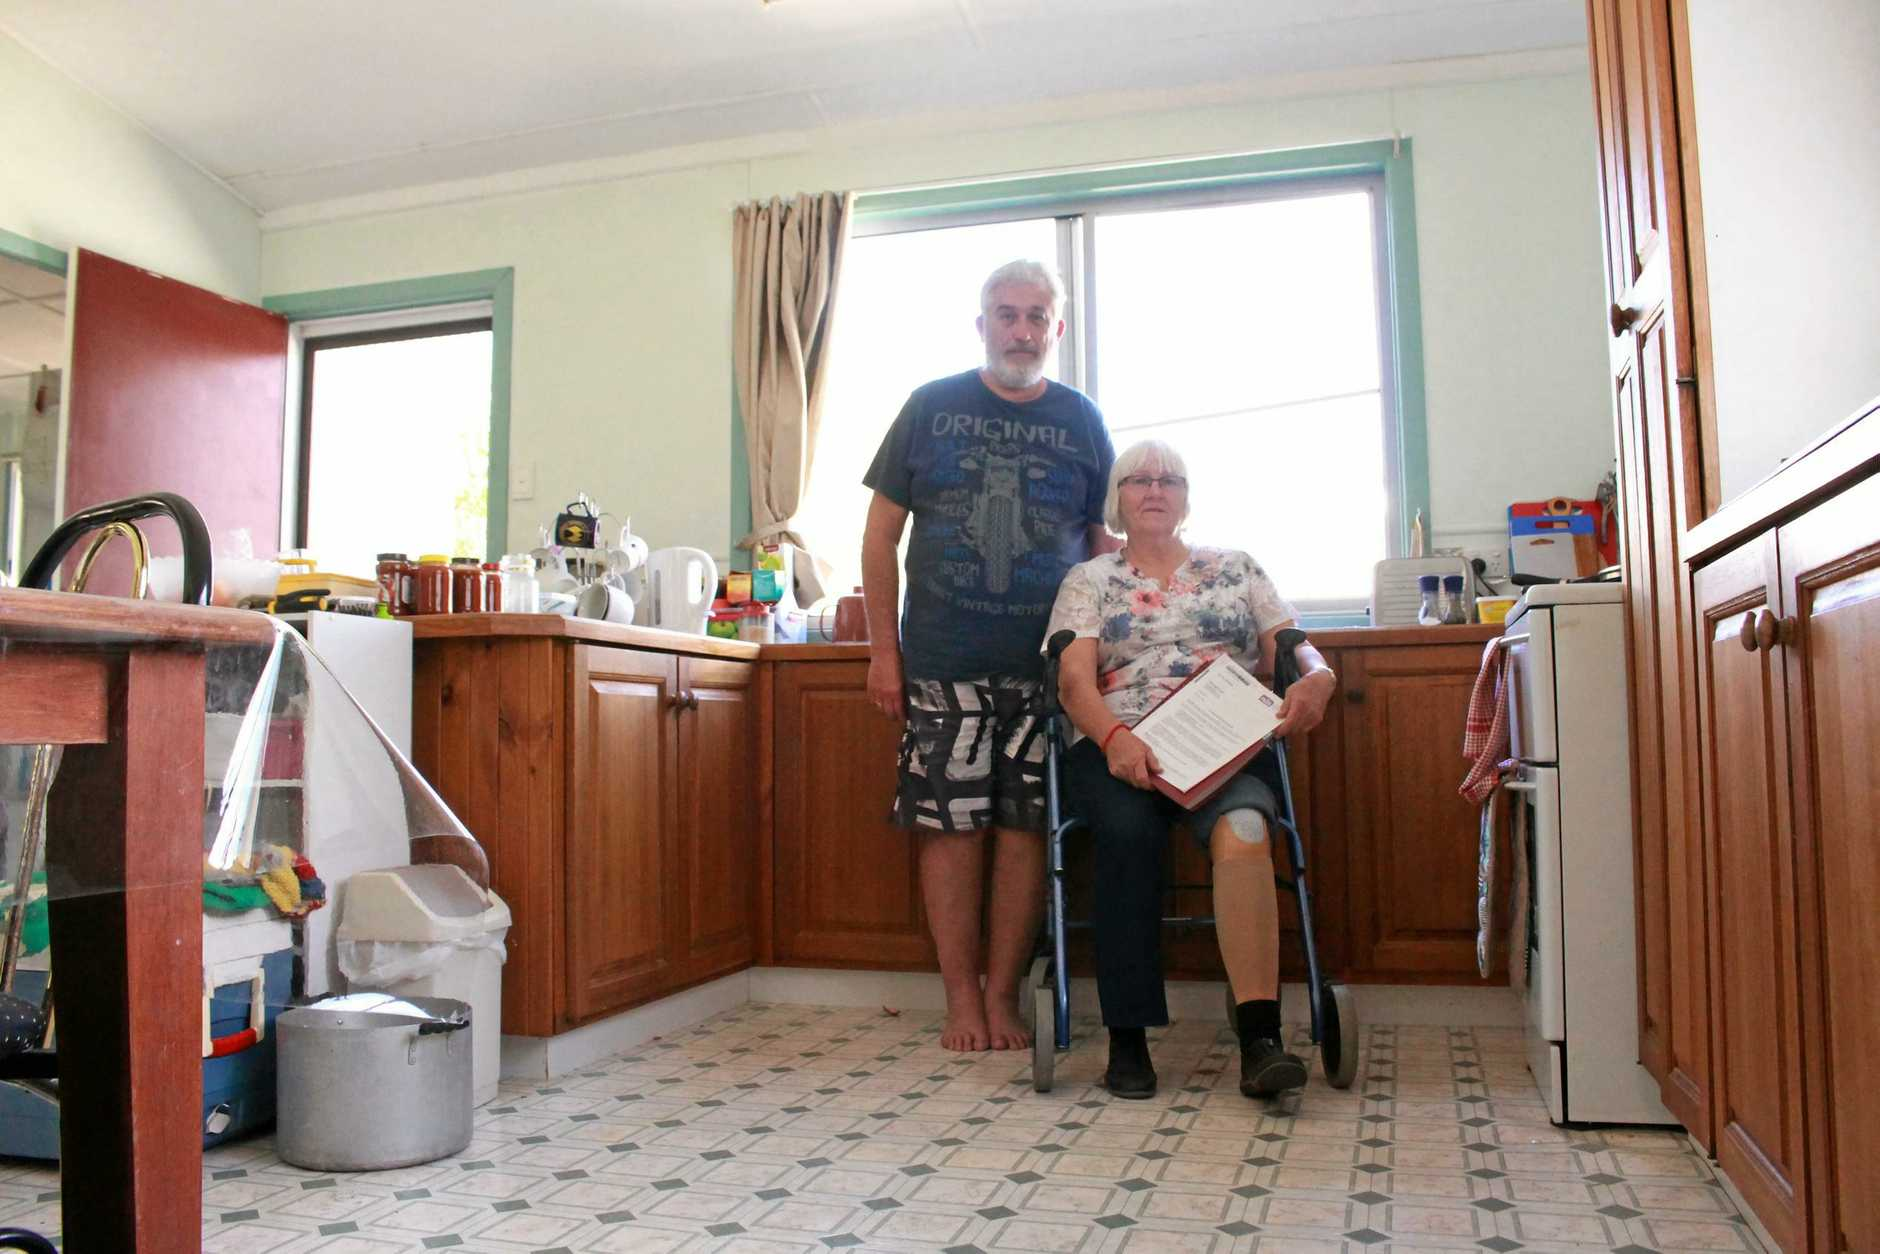 Warwick friends Greg Hutchinson and Kallah Masya have both suffered brain damage and have been helping each other try and access the NDIS but they say the system is not working and in some cases takes advantage of vulnerable people who need support.